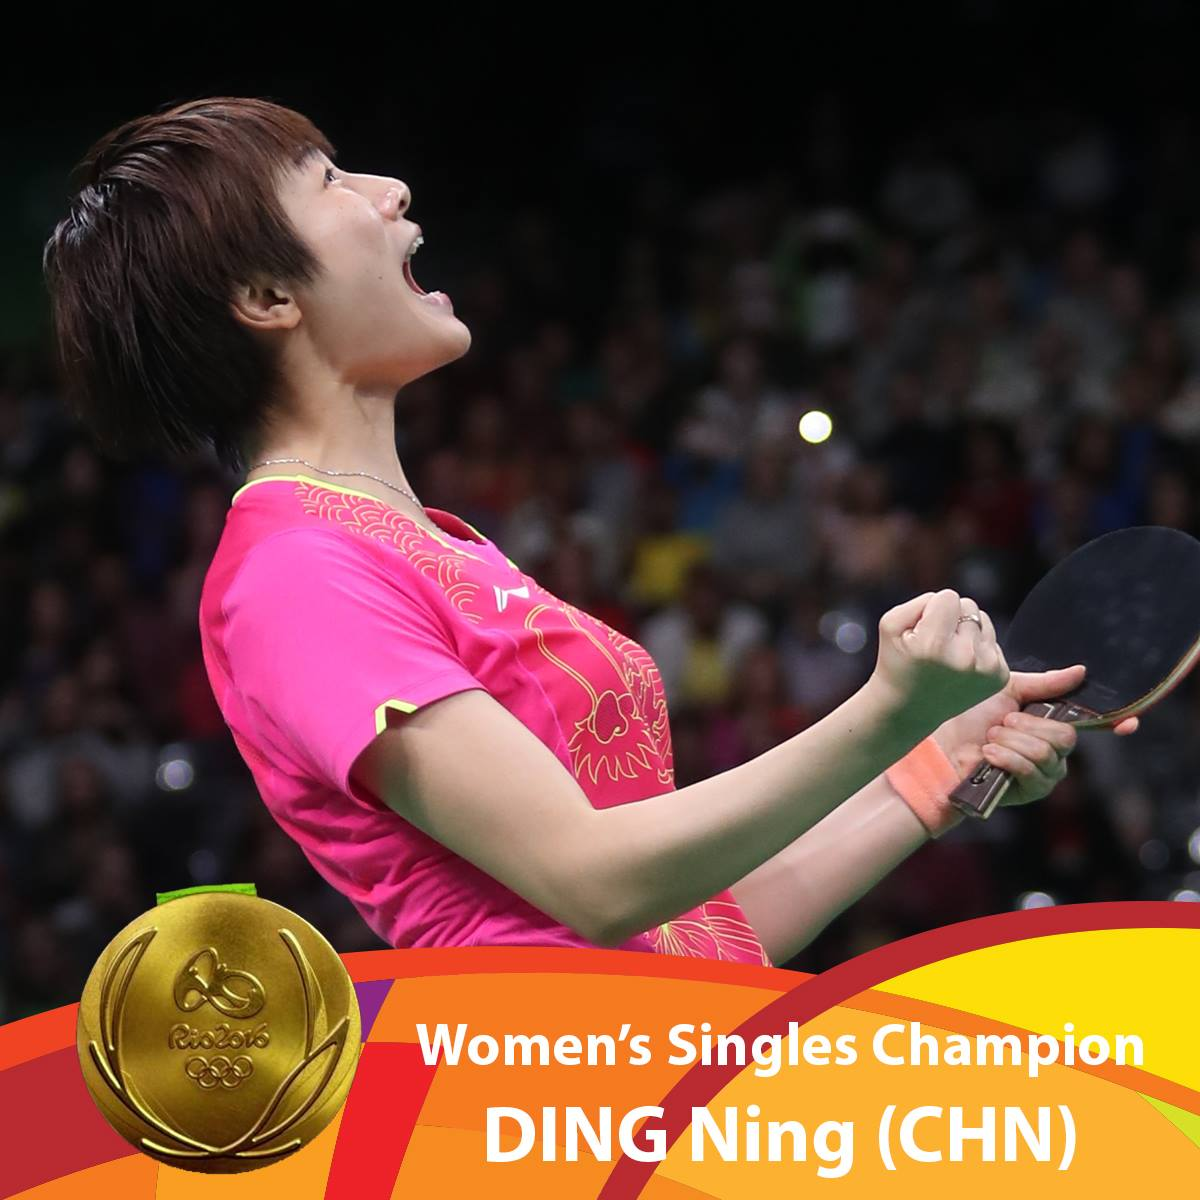 Ding Ning Championne Olympique